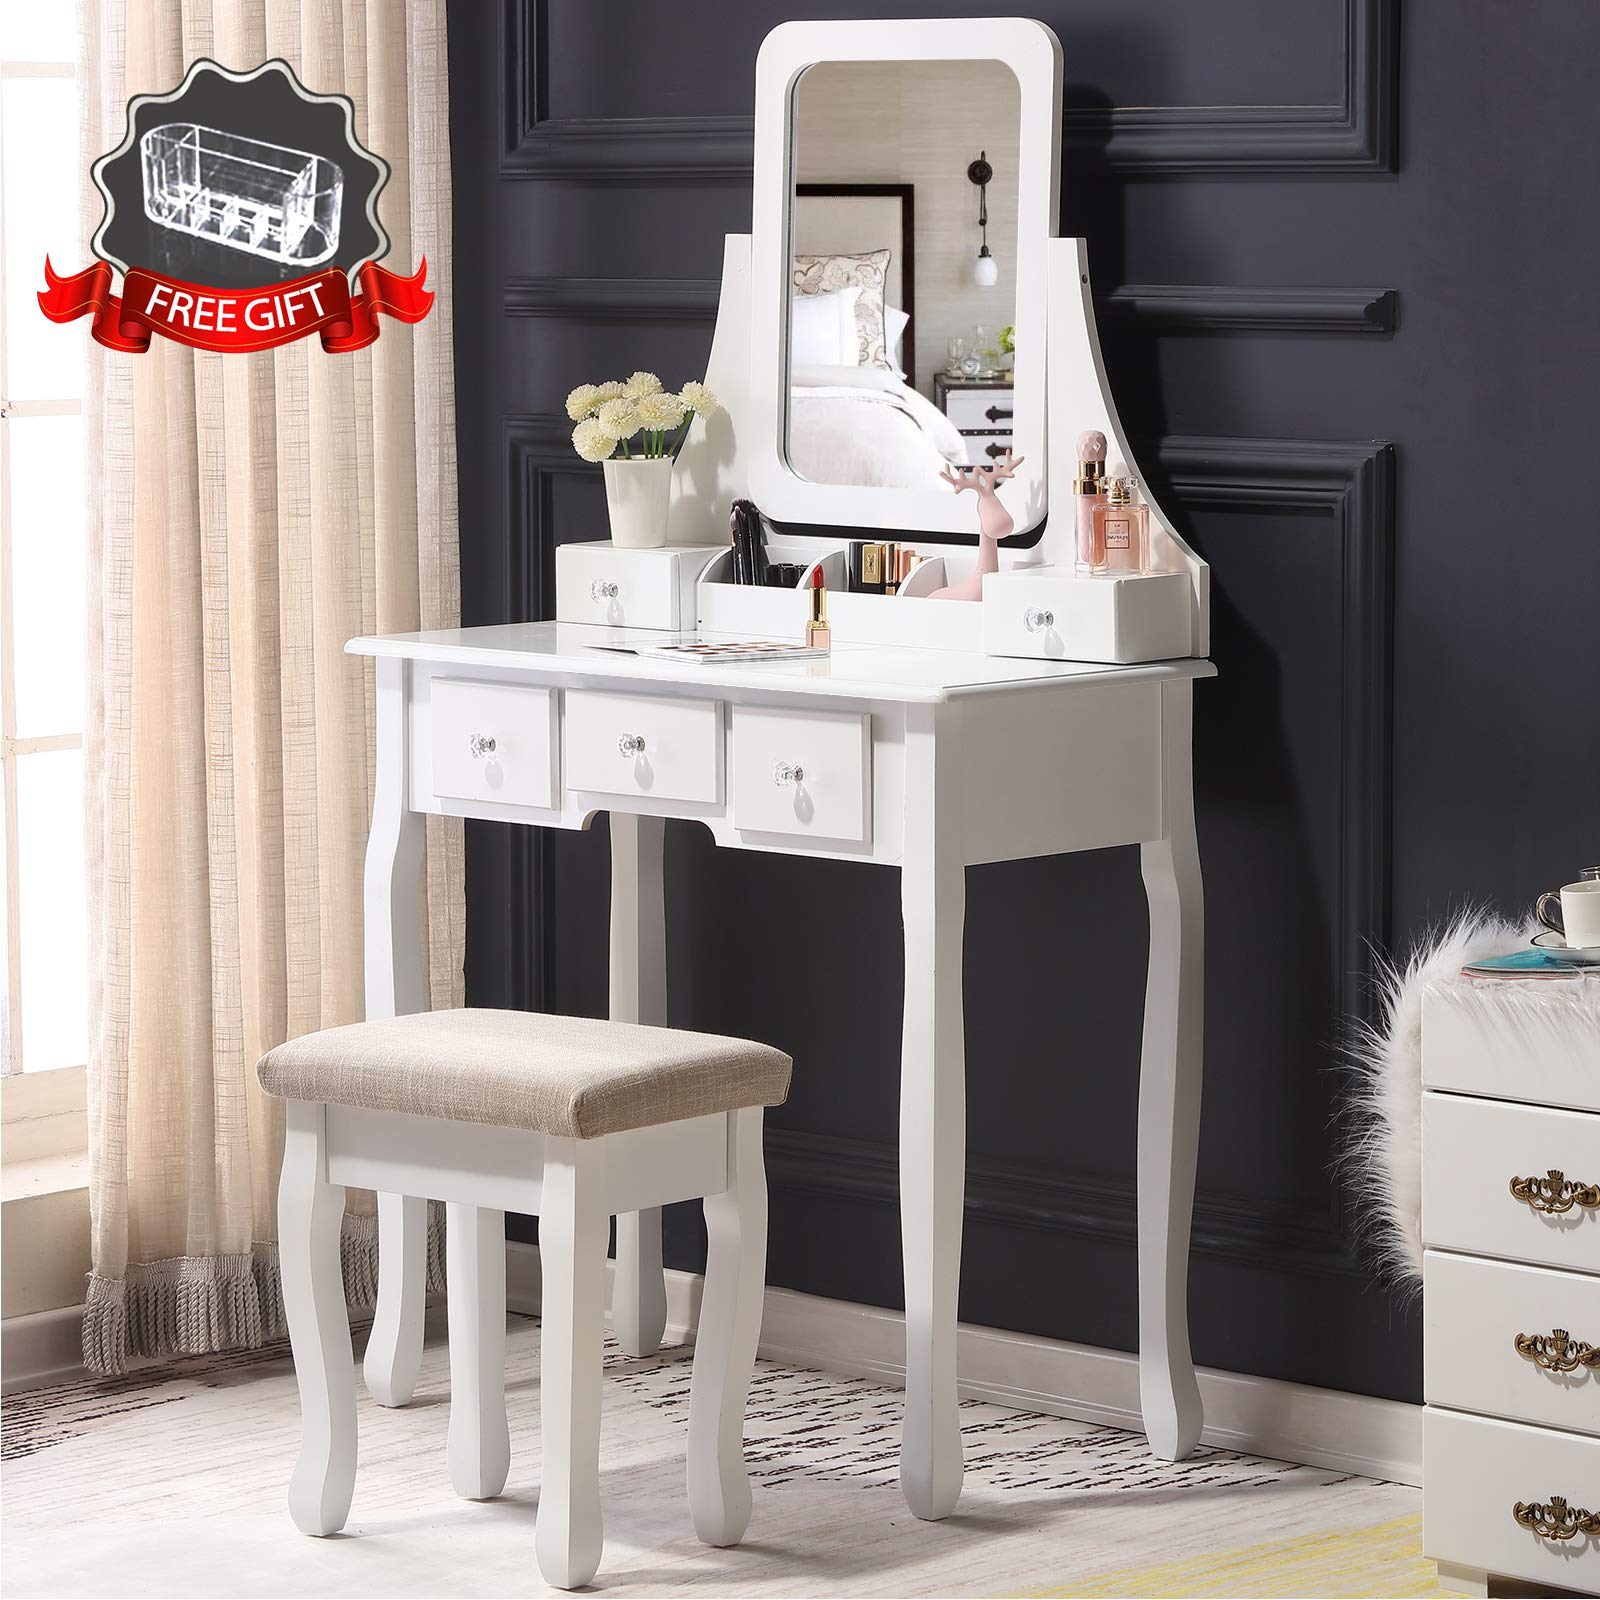 Unihome Vanity Table, Makeup Table with Mirror Stool White Dressing Table with Drawers Makeup Desk Adult Makeup Desk for Women